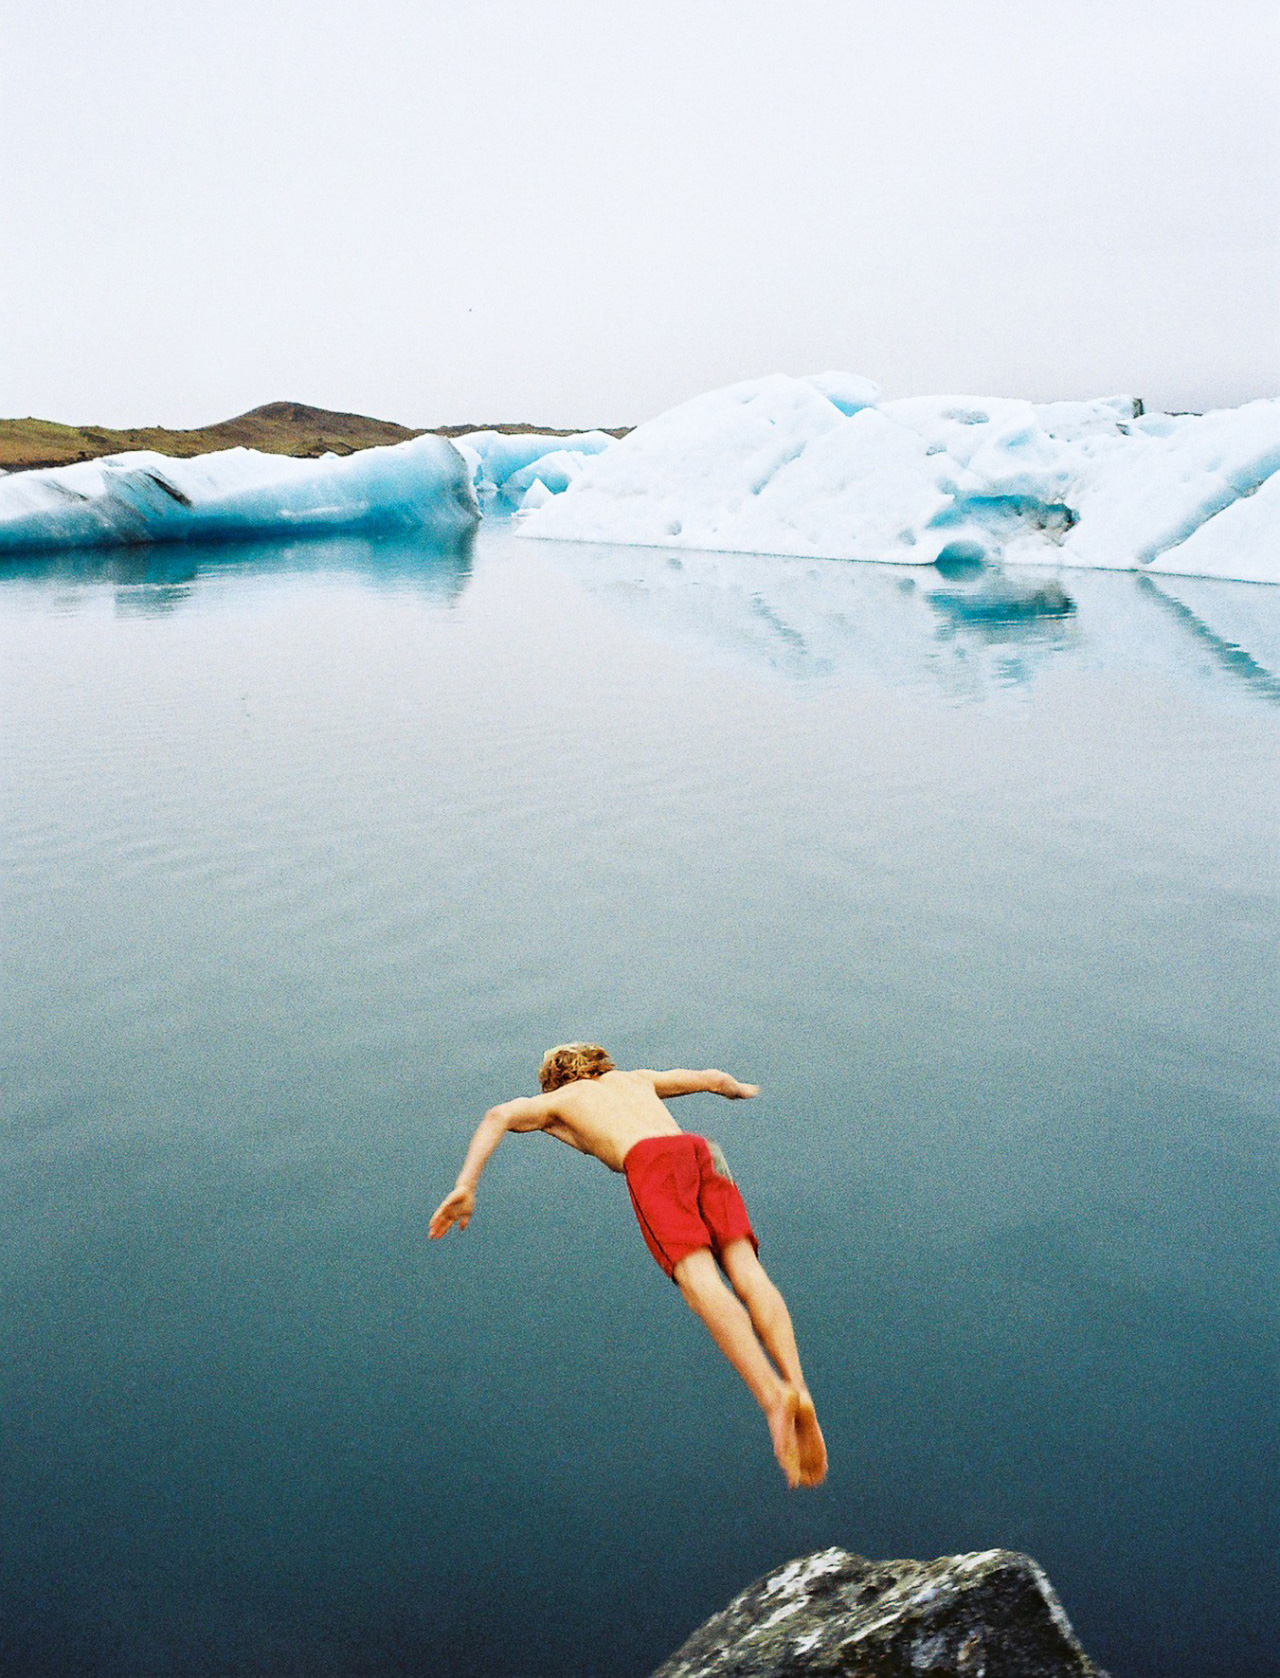 Diving into glacial Iceland waters. Photo by James Bowden